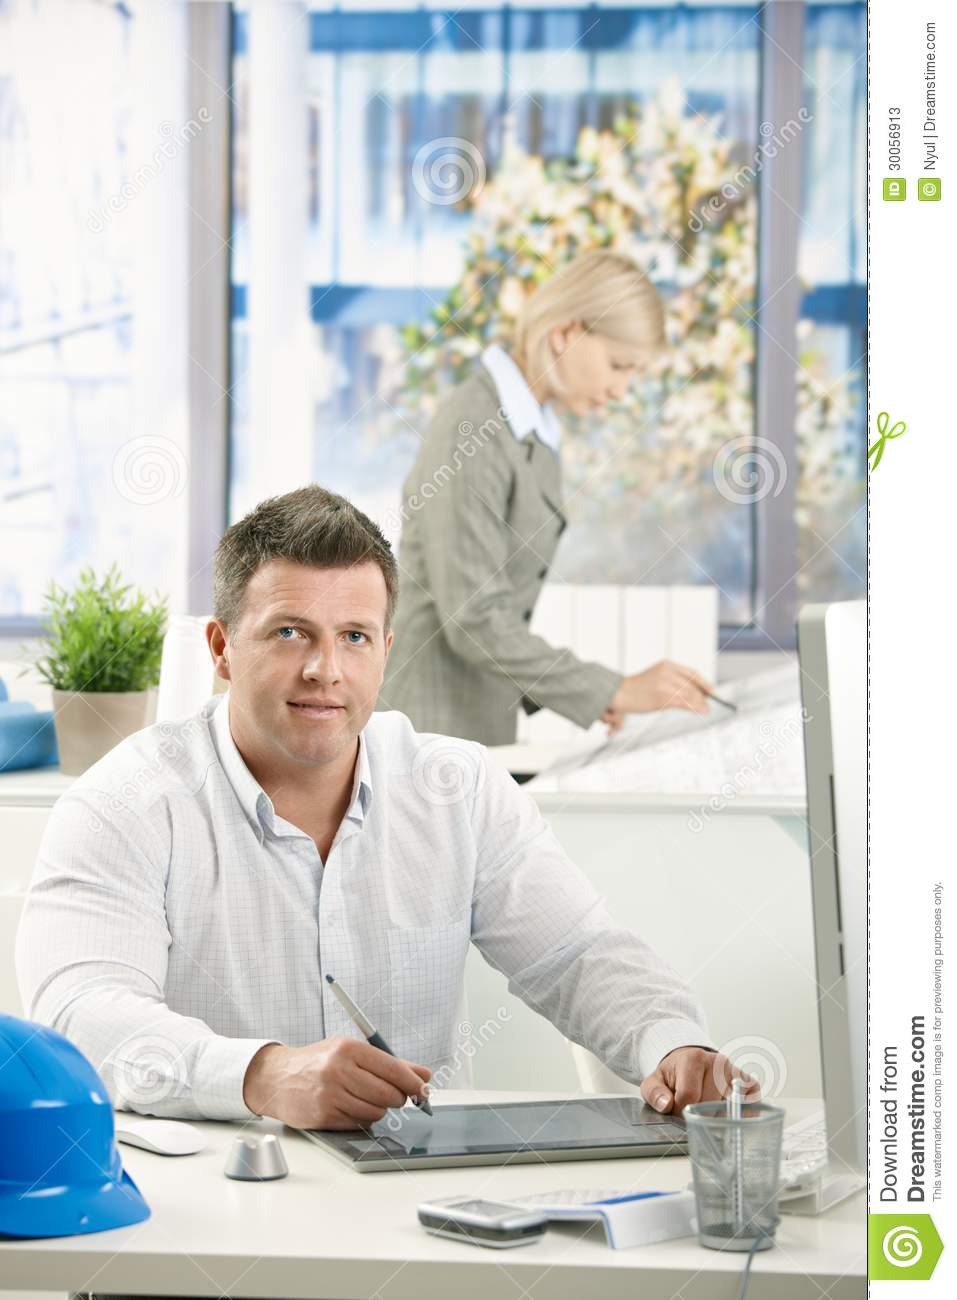 Architect at work stock photos image 30056913 for Architect at work